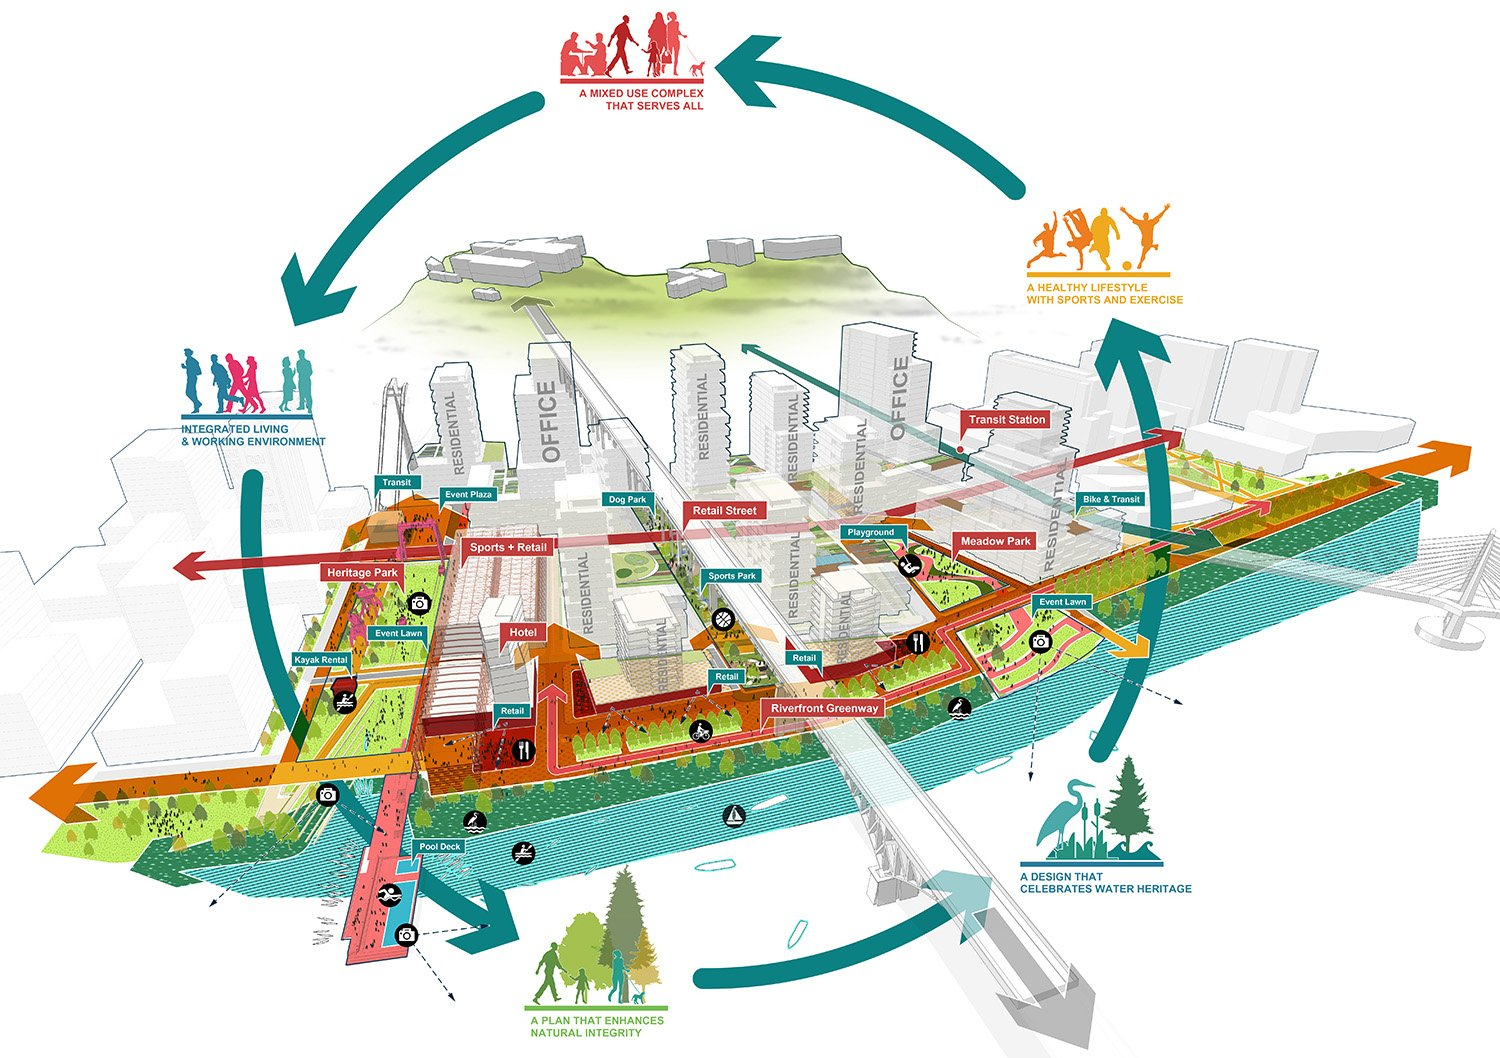 The district framework is structure by 3 diverse new public spaces.